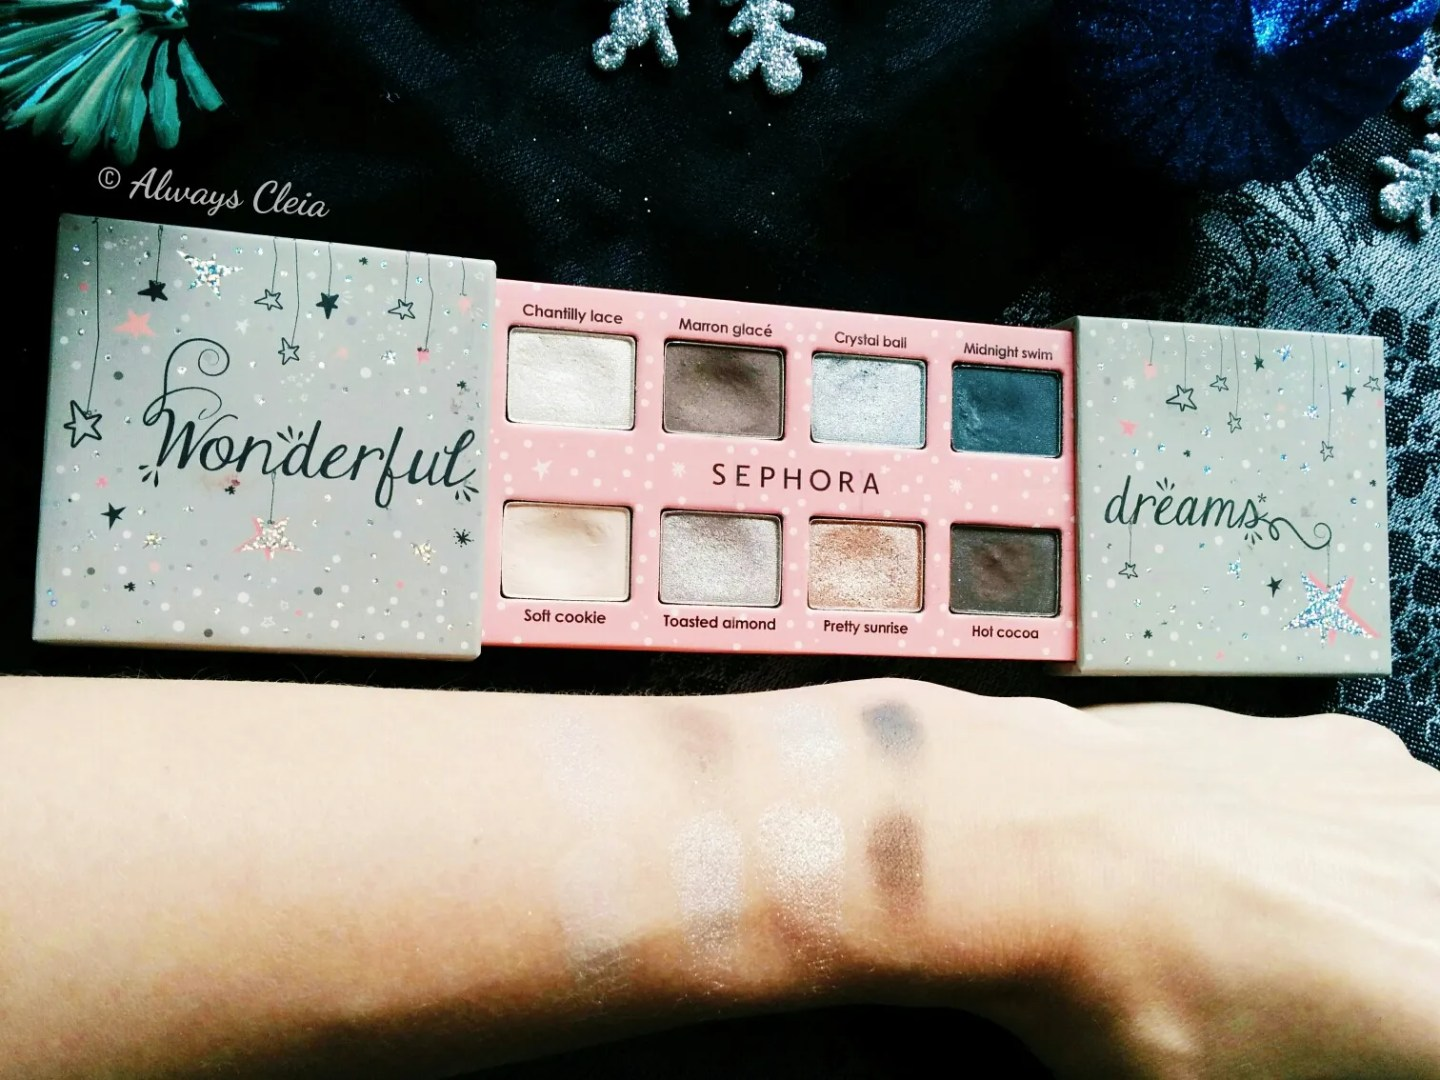 Sephora Wonderful Dreams Palette